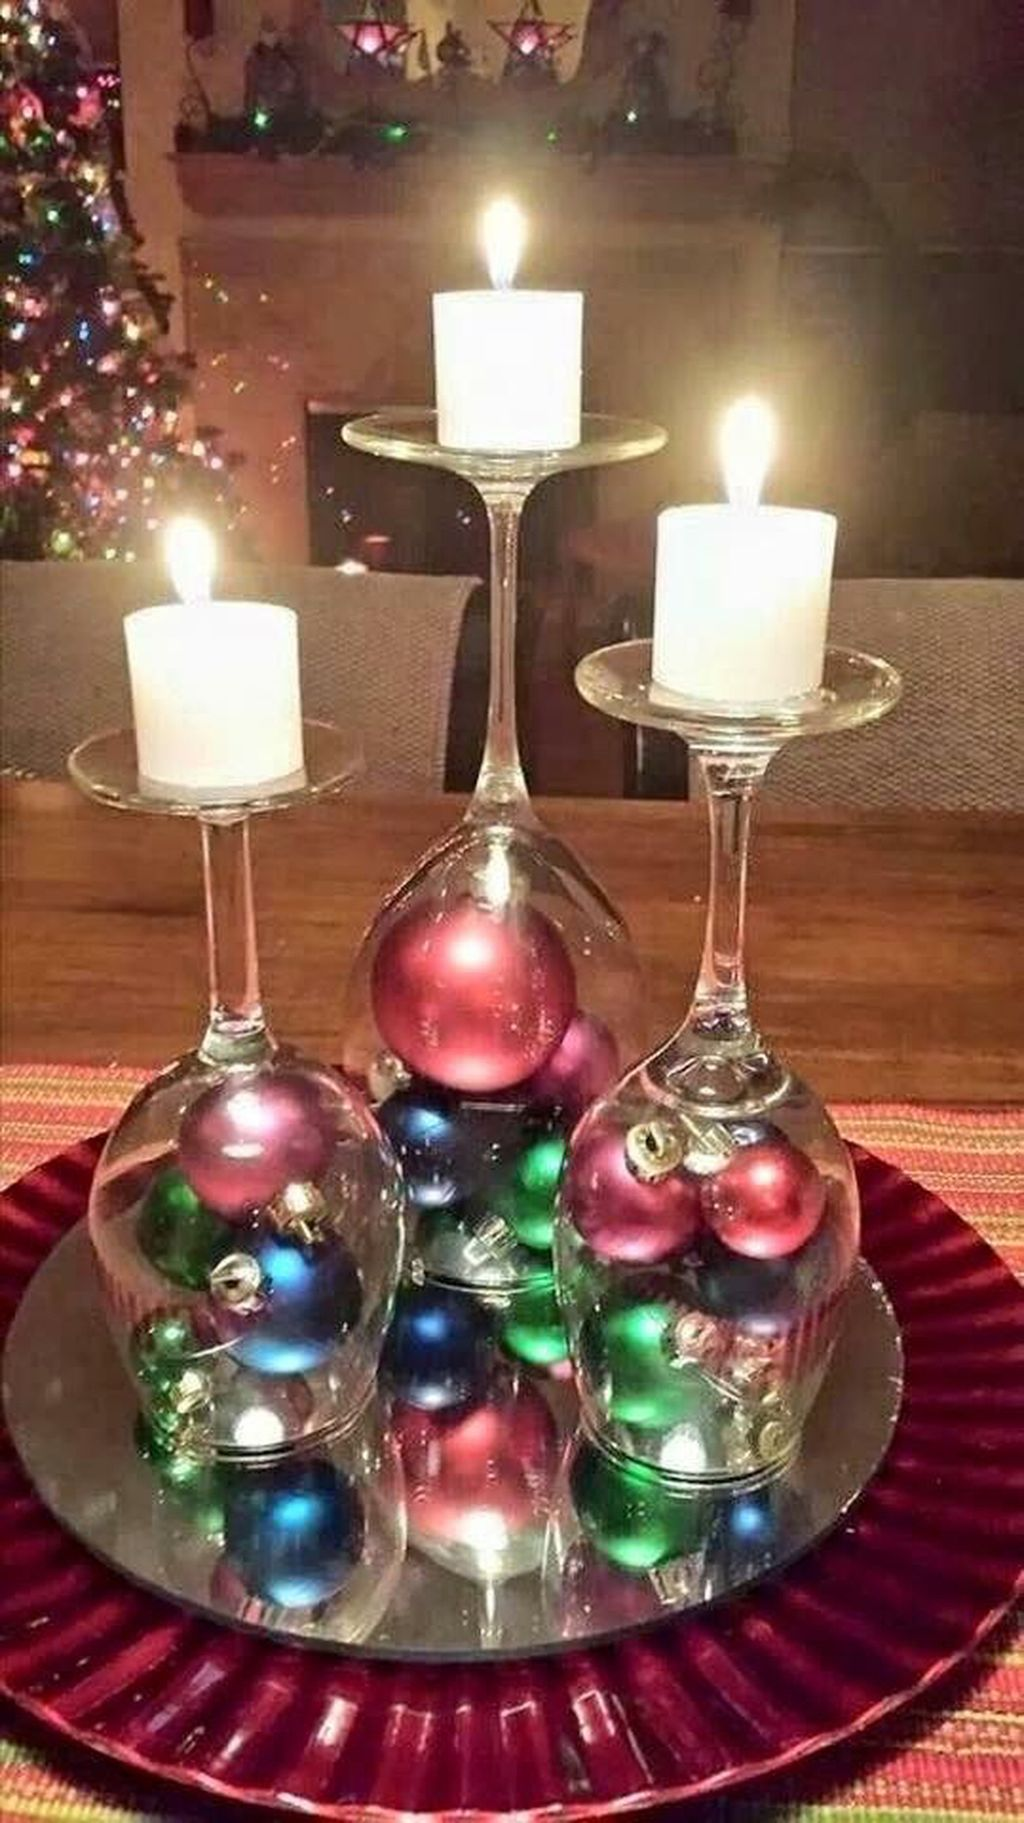 Inspiring Modern Rustic Christmas Centerpieces Ideas With Candles 33